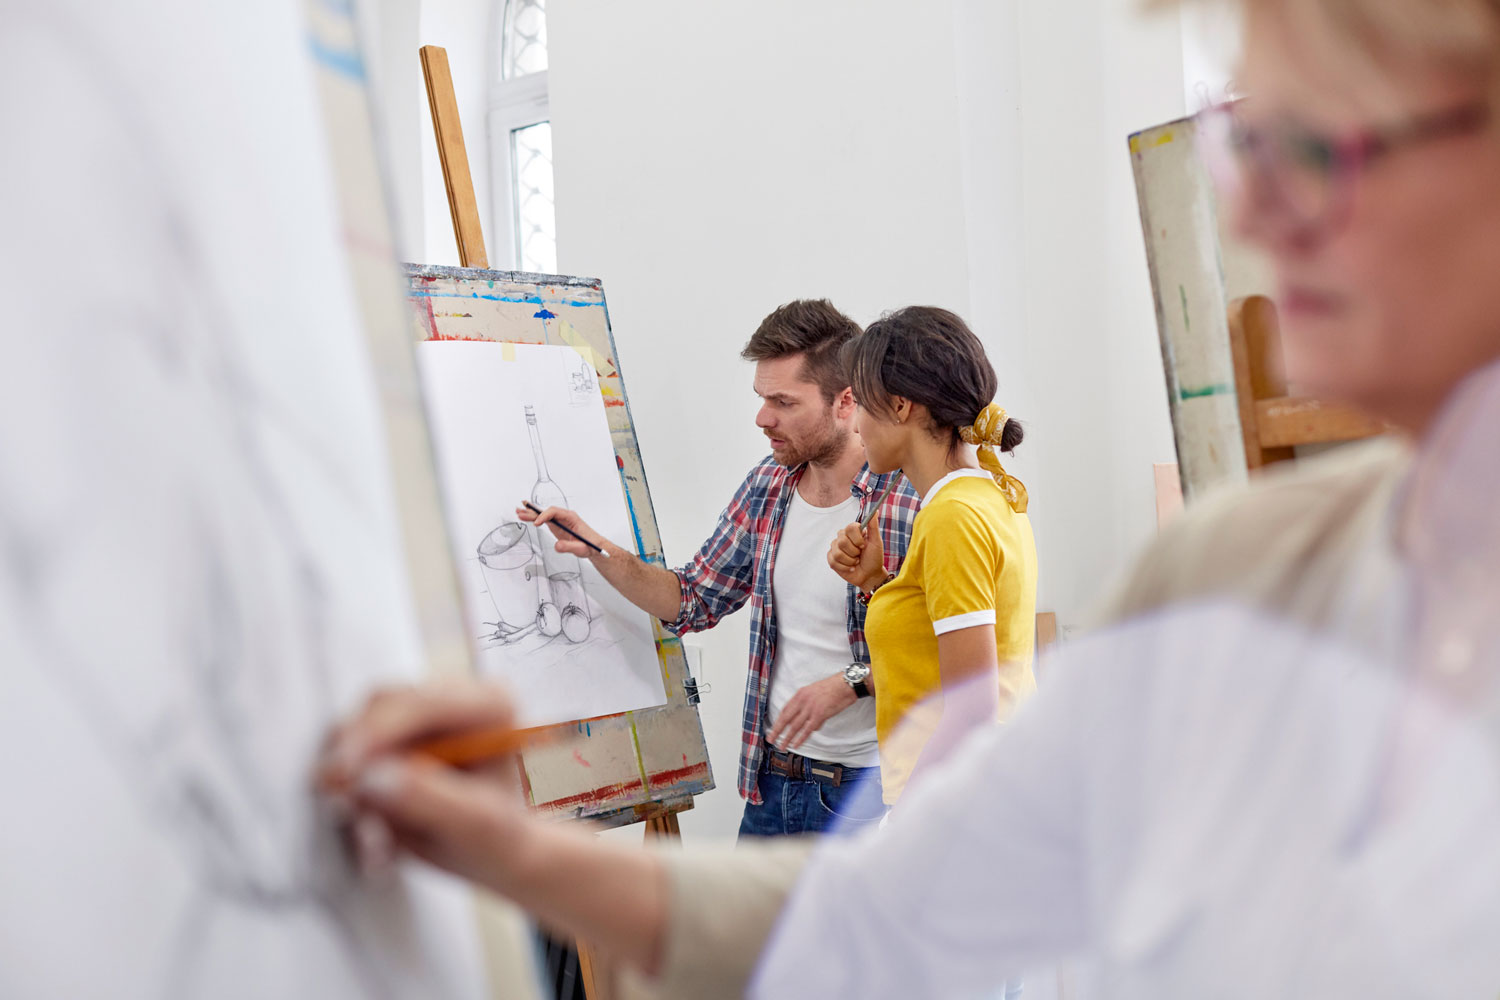 Getting access to feedback is crucial for getting the most out of art courses.